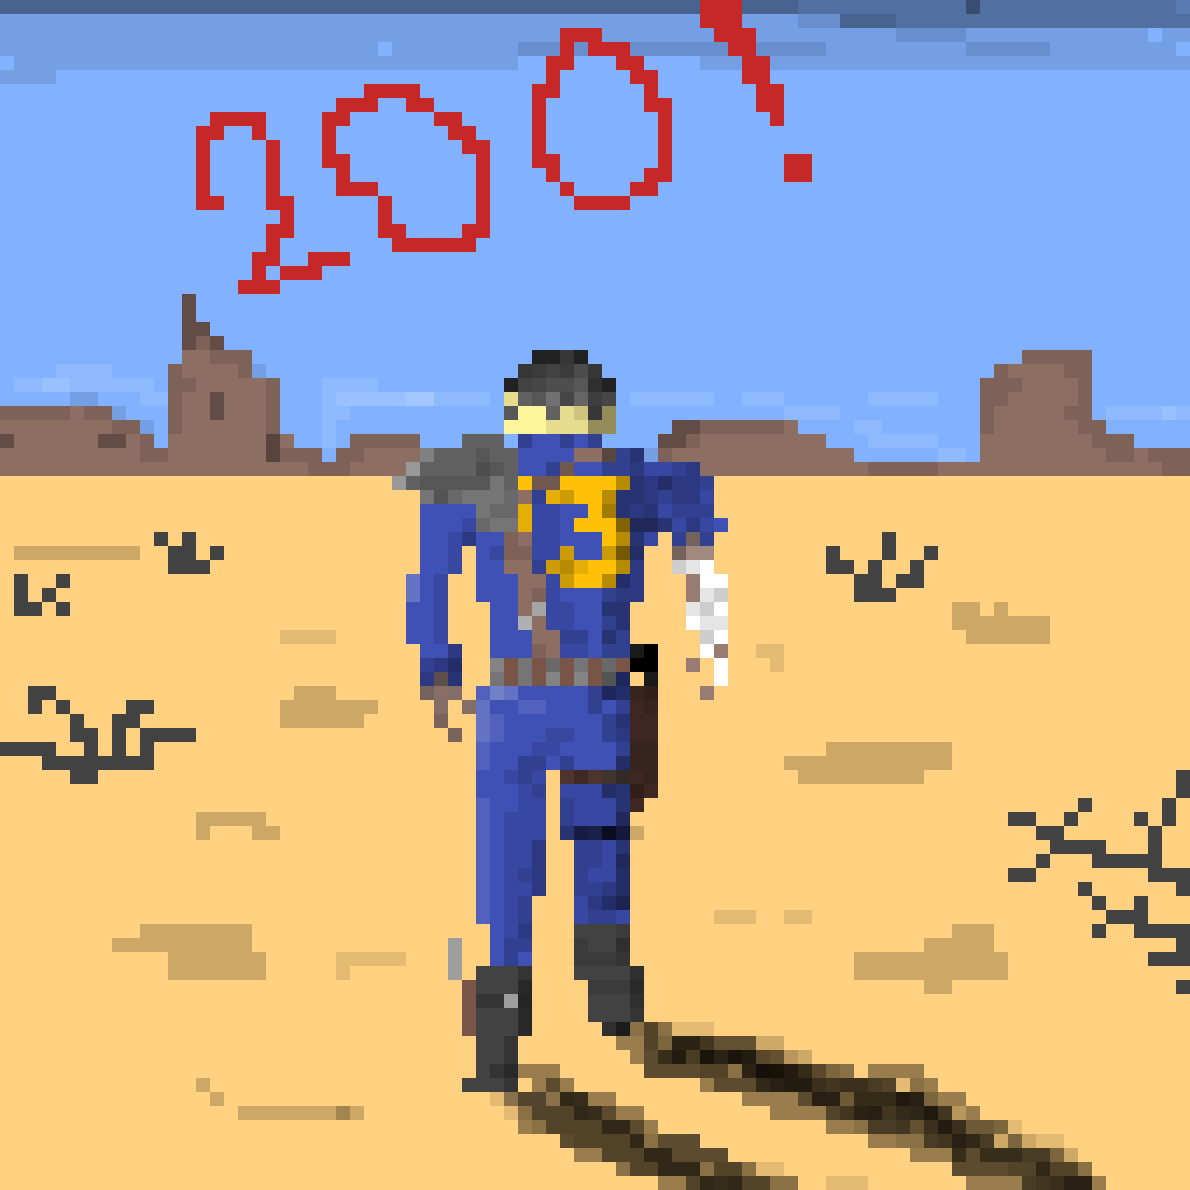 vault dweller fallout 1 ending 3.0/200 FOLLOWERS SPECIA